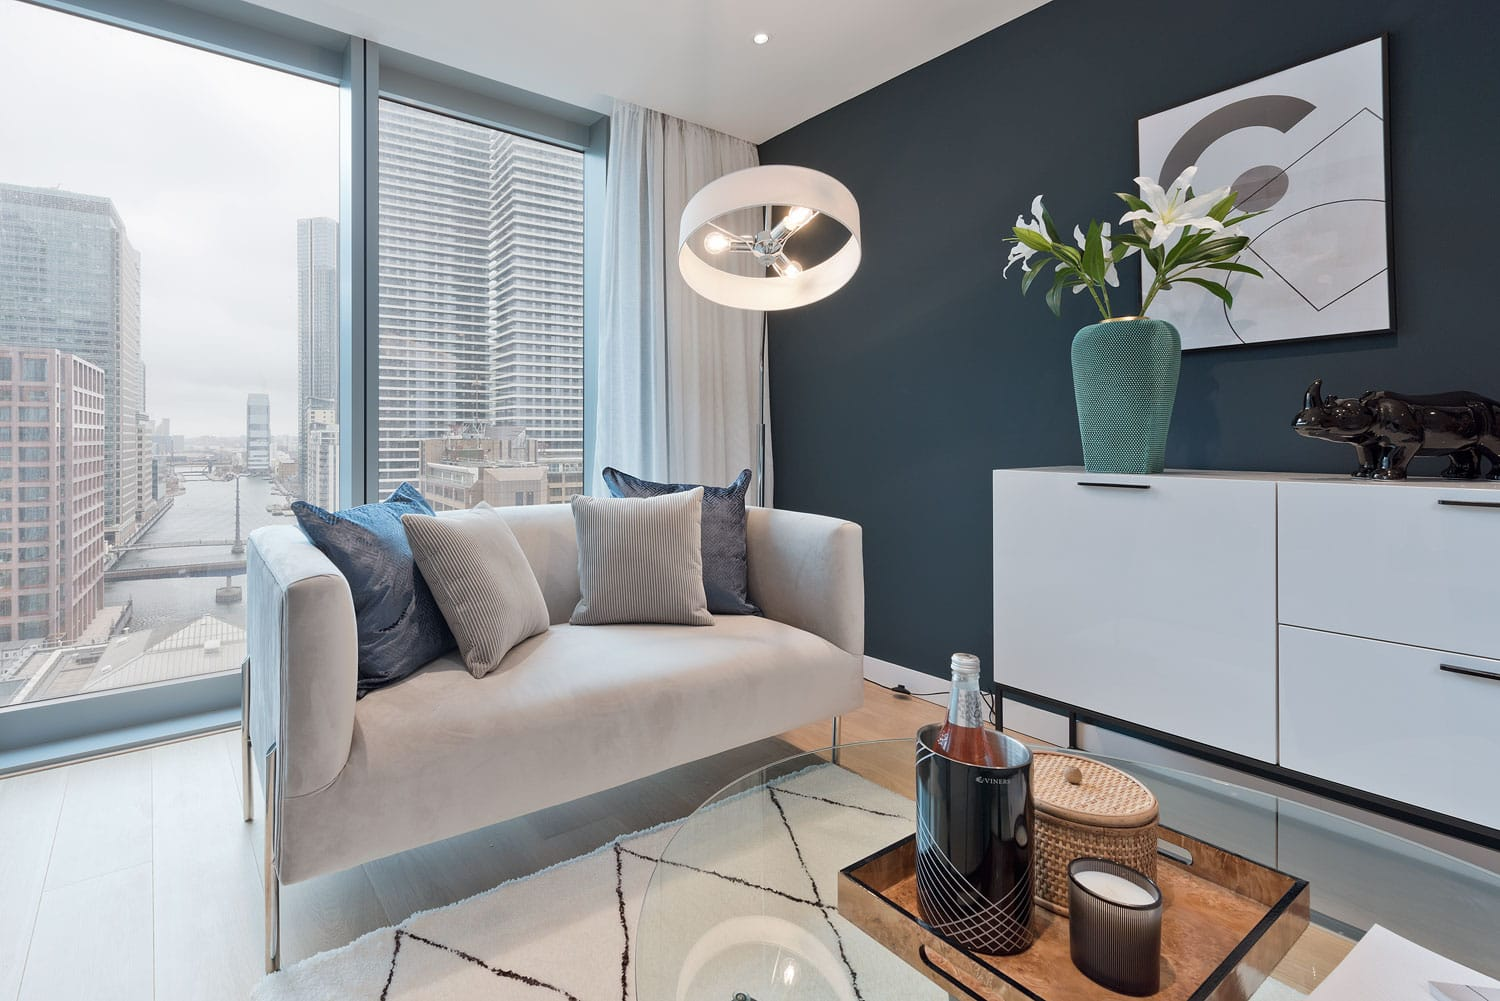 Internal photography of Poplar HARCA's Landmark Pinnacle - Shared Ownership homes available on Share to Buy